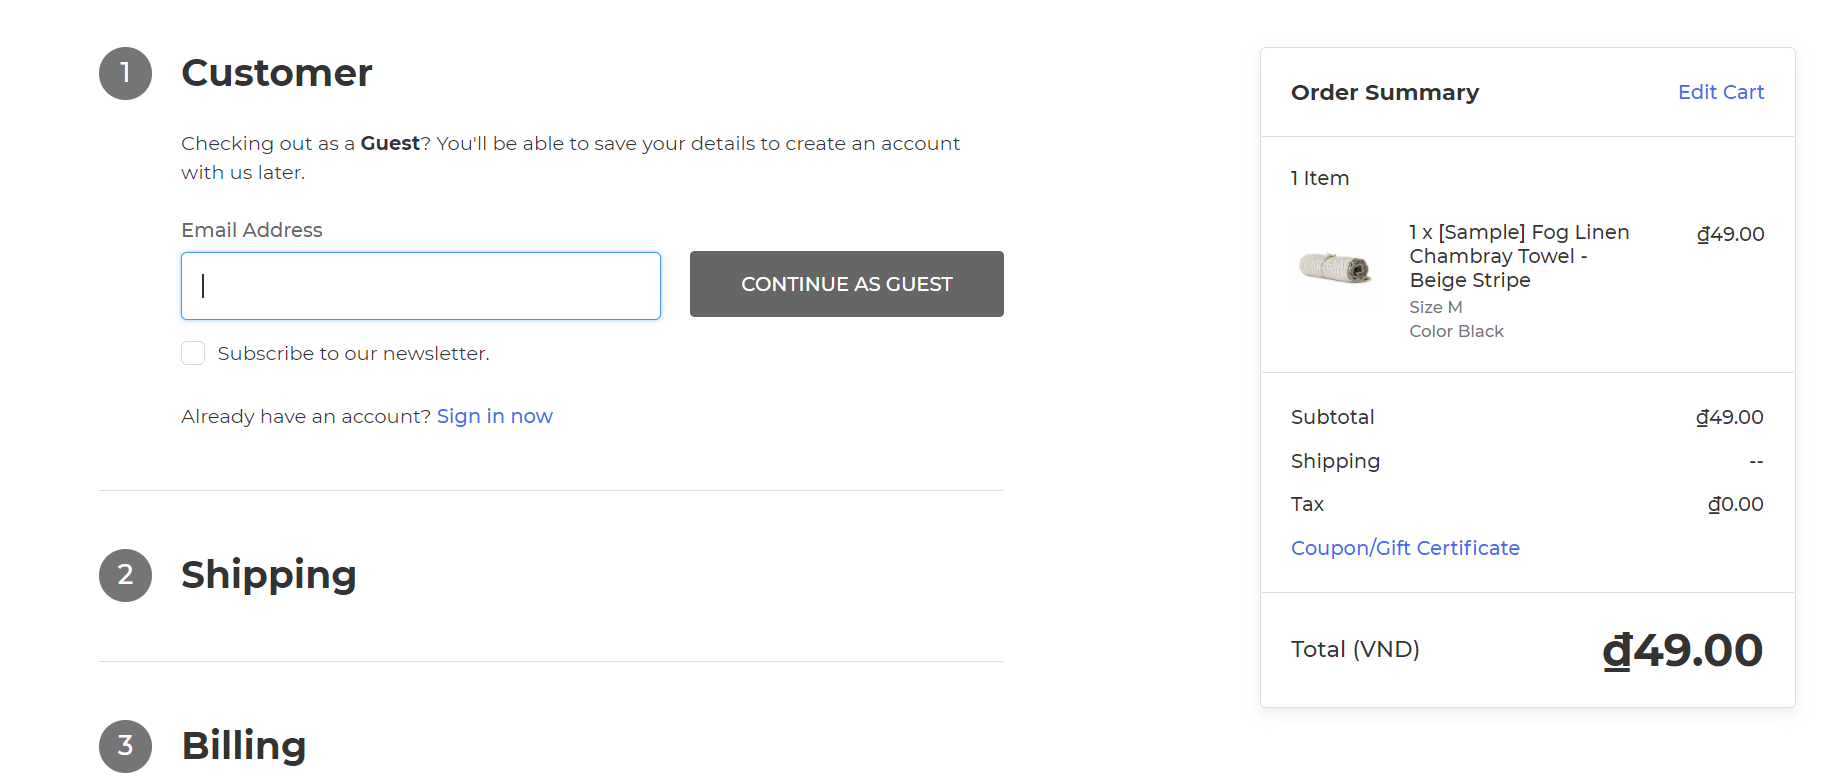 You are required to fill in information about your email address, your shipping address and your payment method